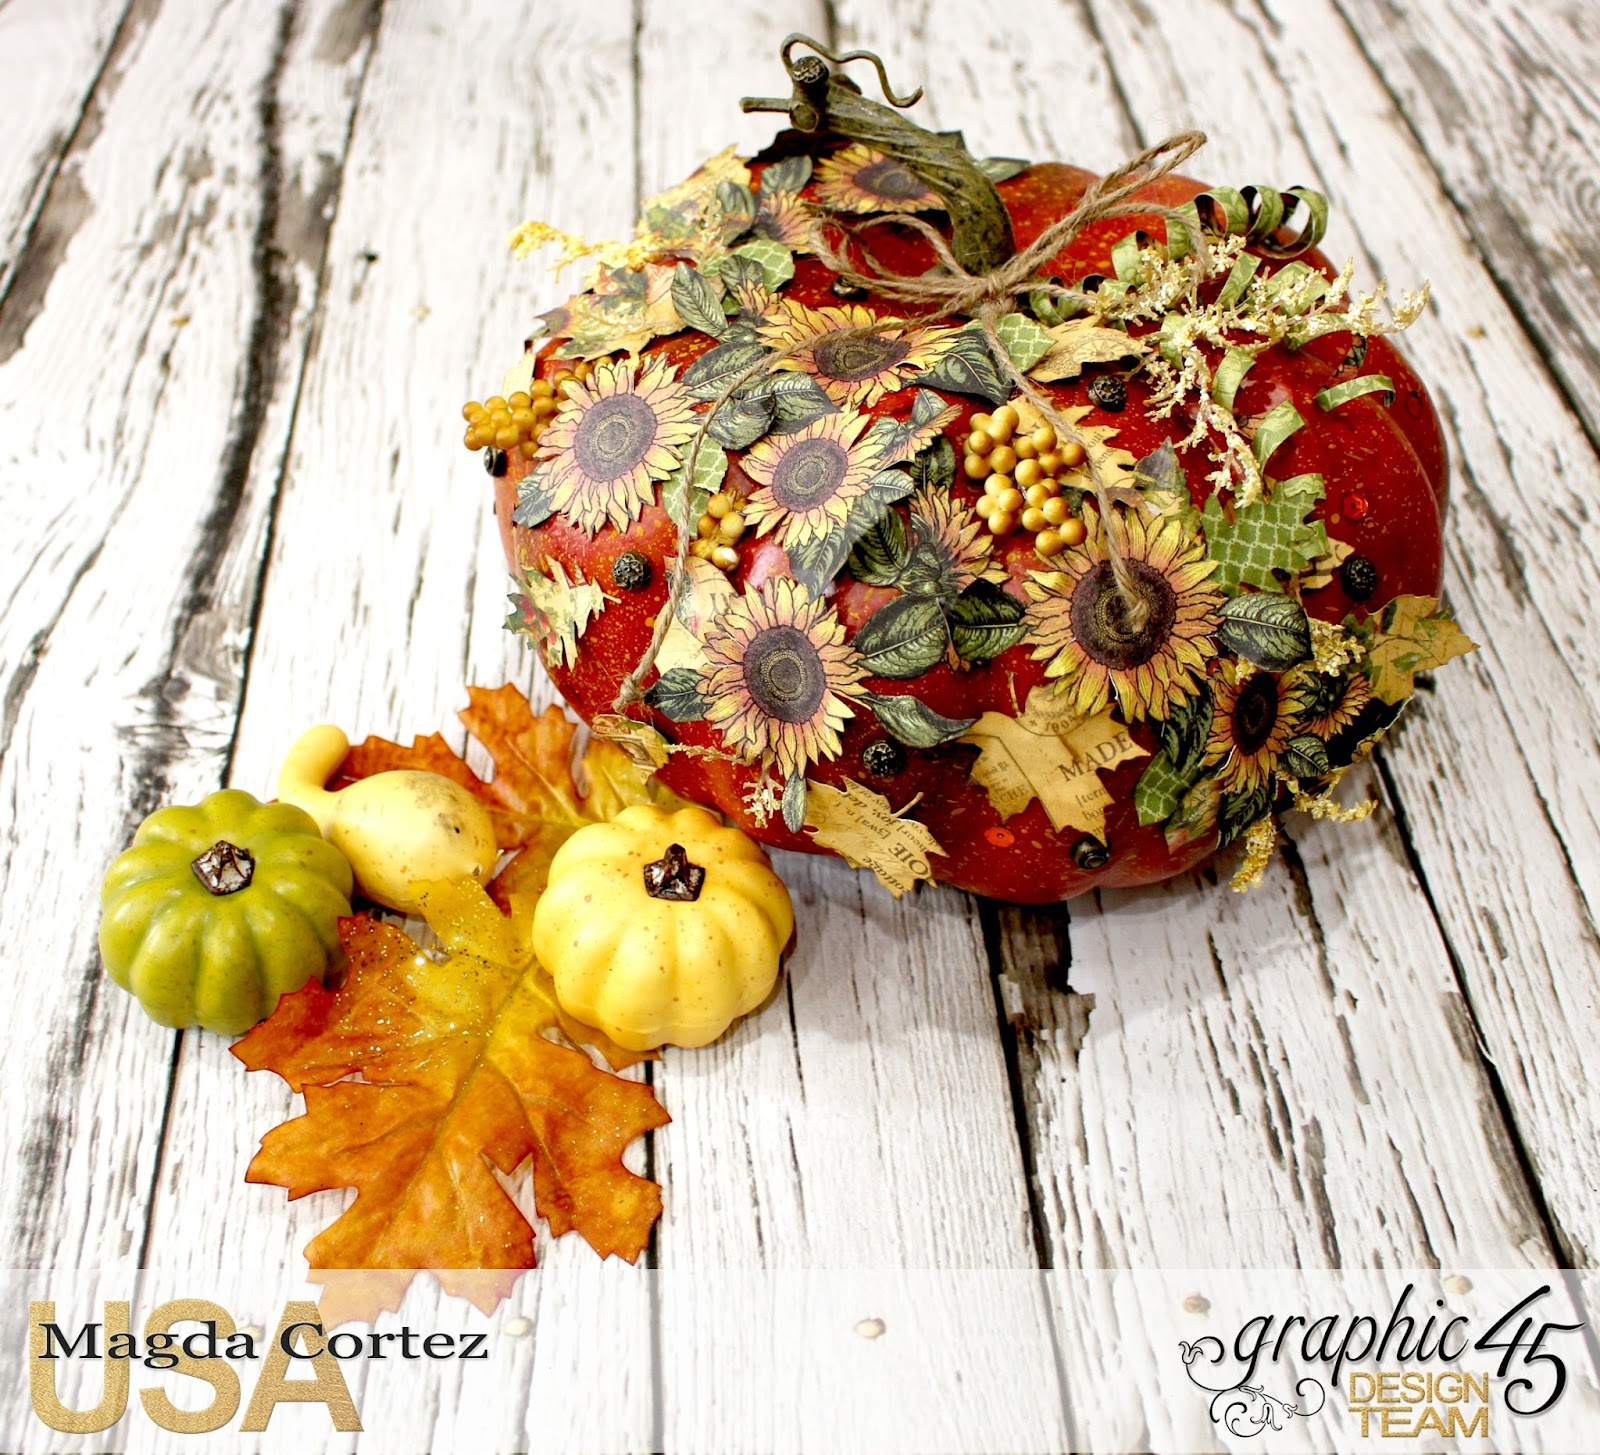 Fall Decor-French Country By Magda Cortez, Product of Graphic 45, Photo 06 of 07.jpg